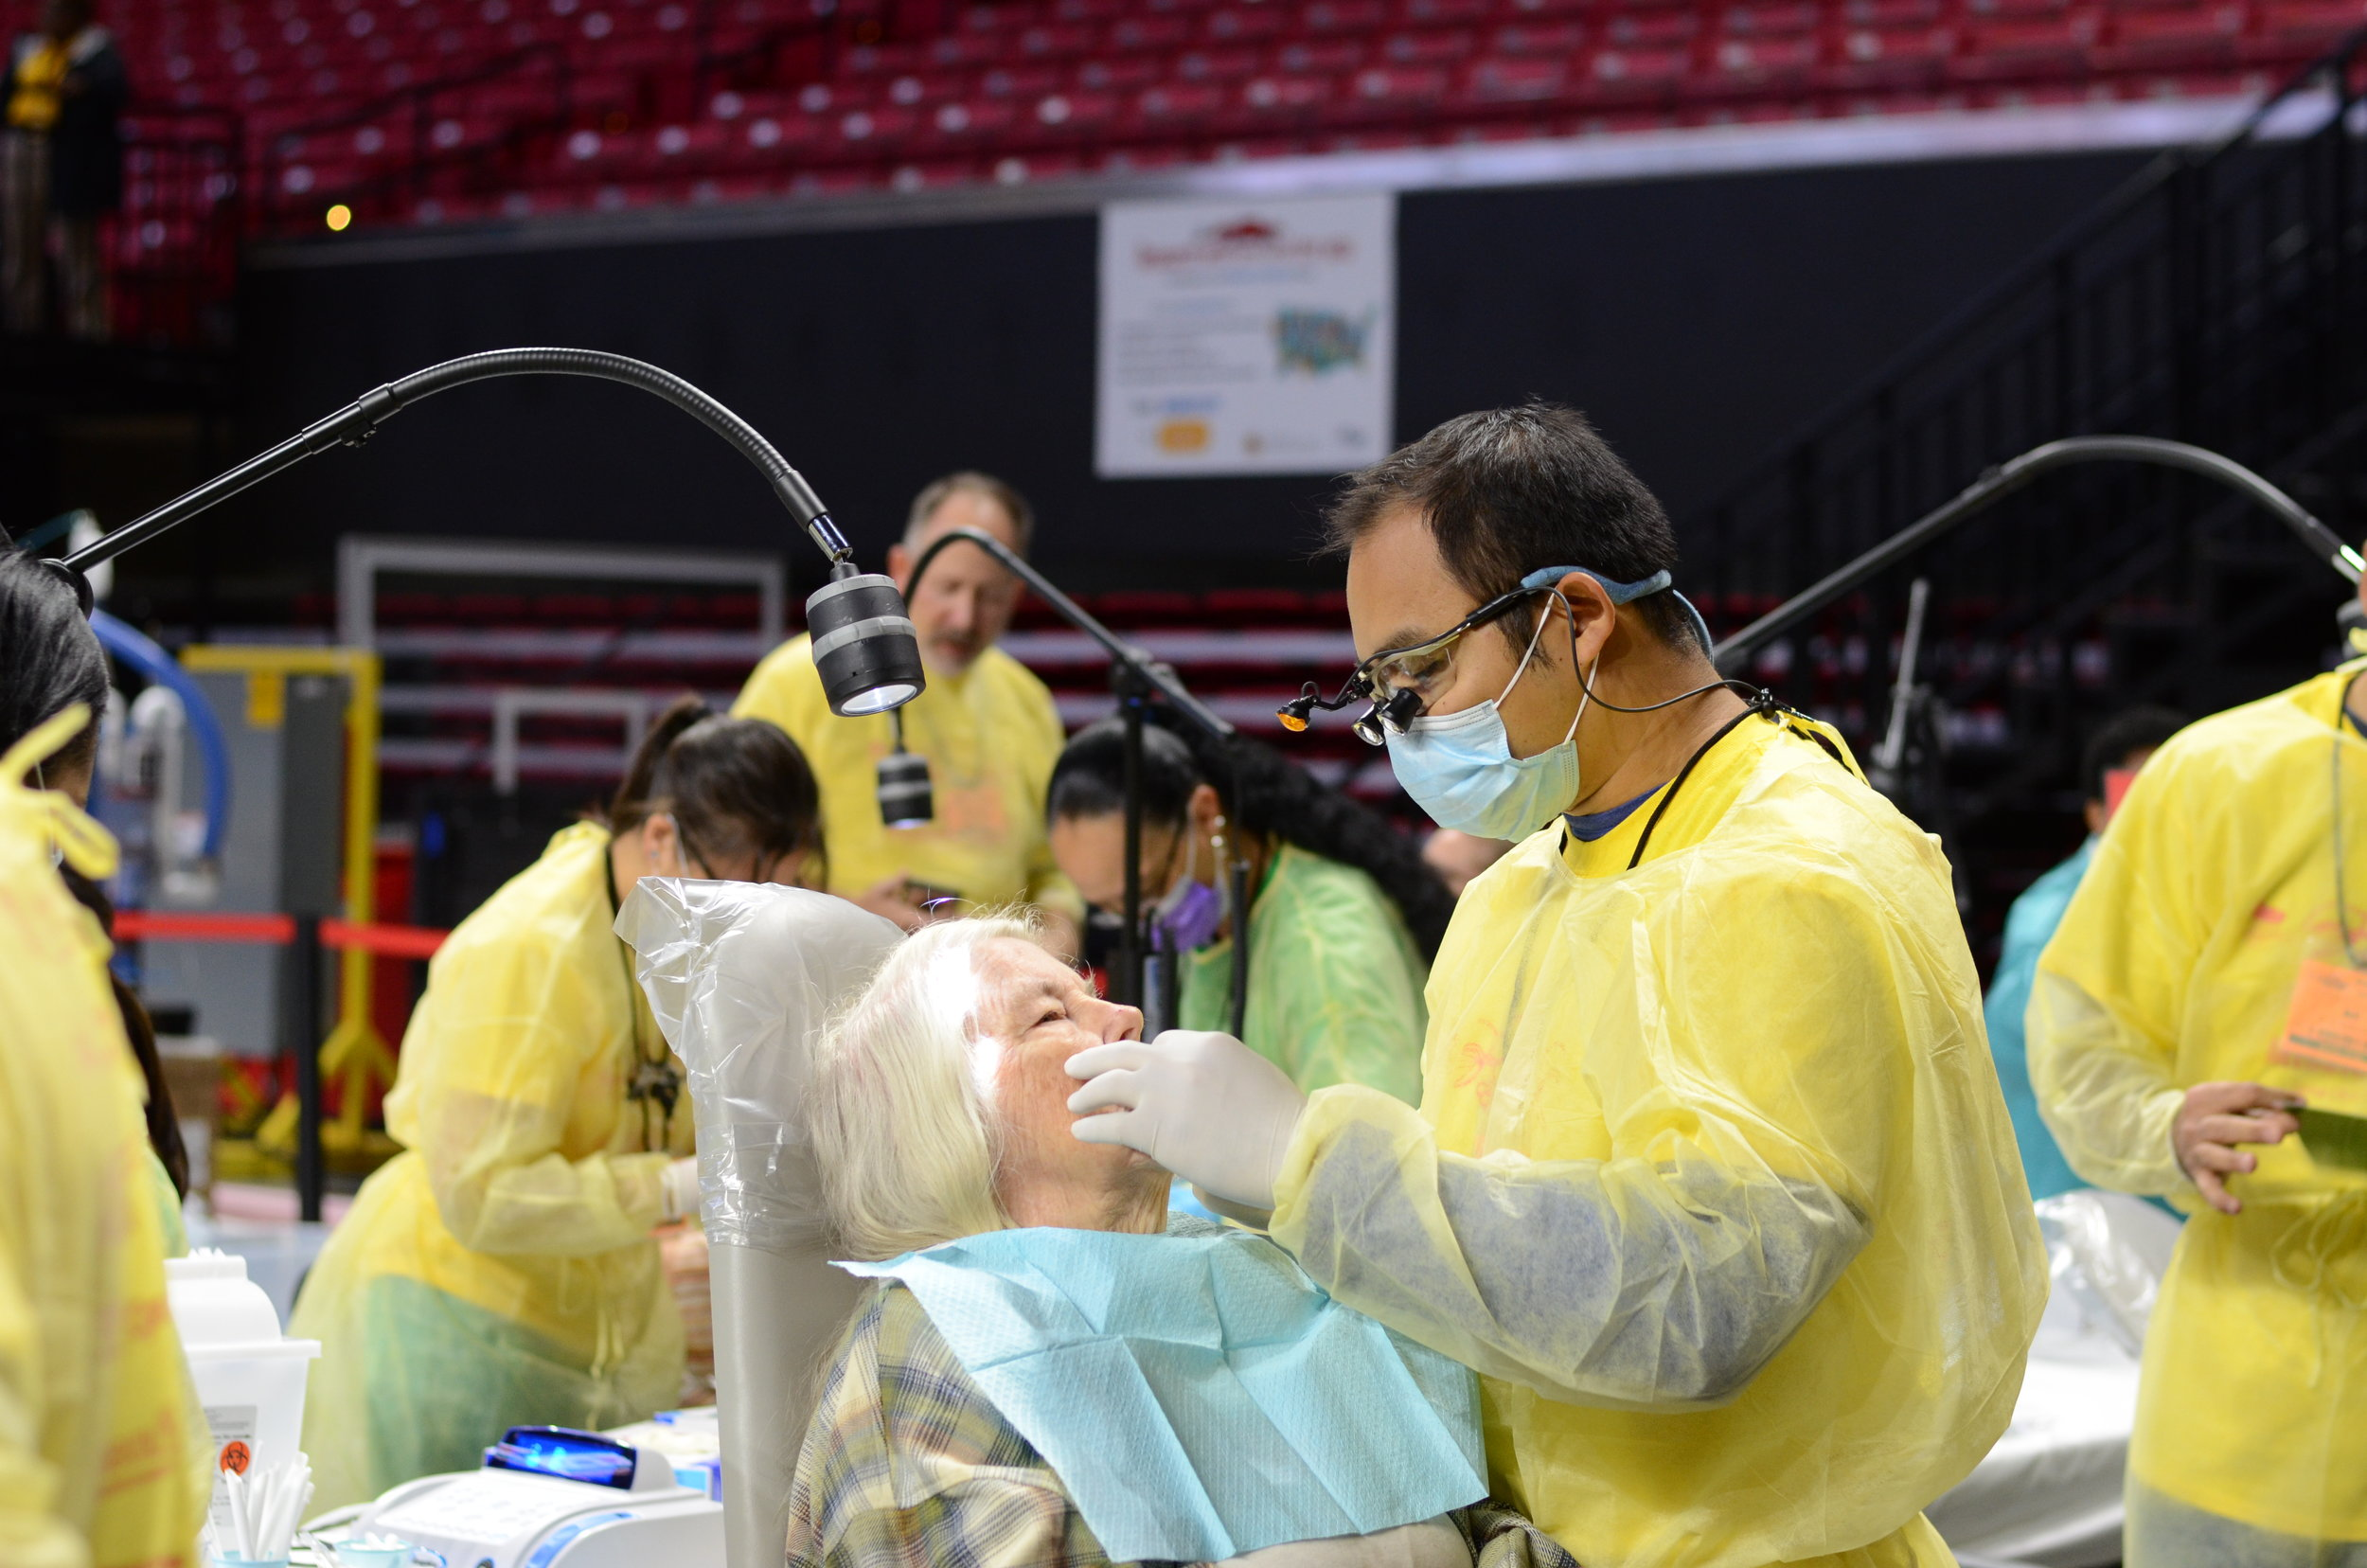 Dr. Nhu assisting a patient at Mission of Mercy 2017.